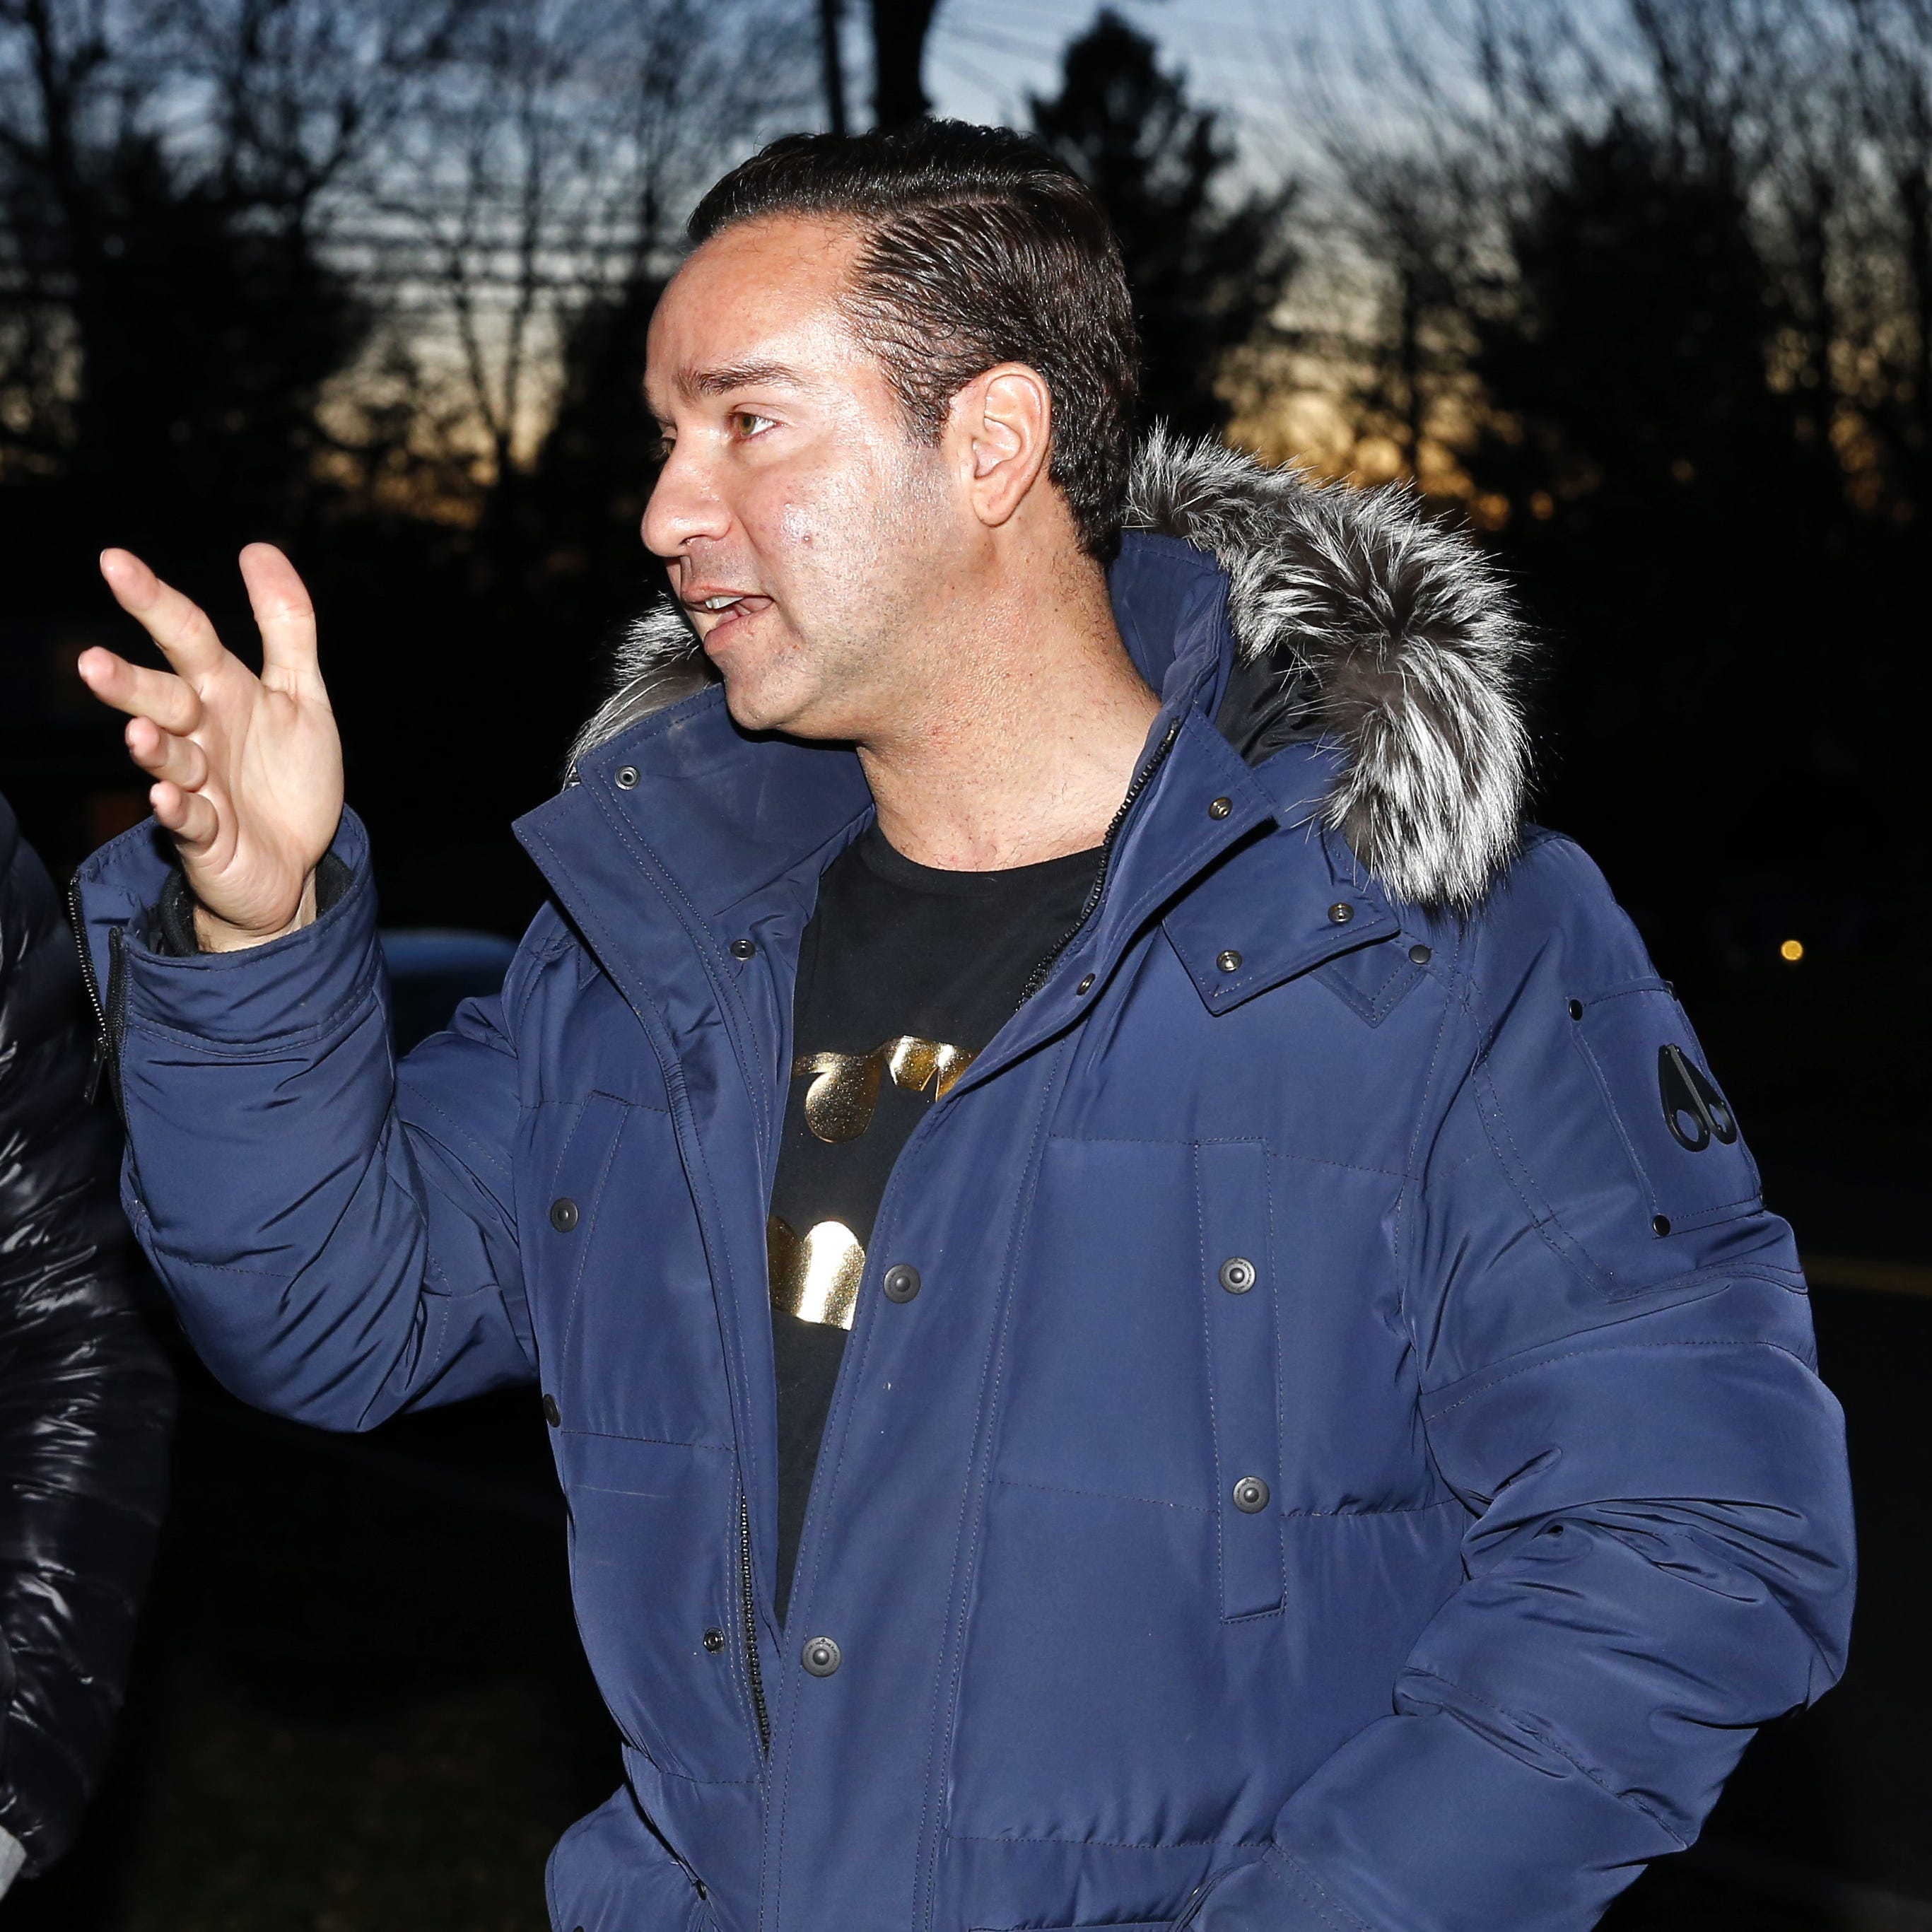 Jersey Shore : Mike 'The Situation' Sorrentino's stoic road to prison